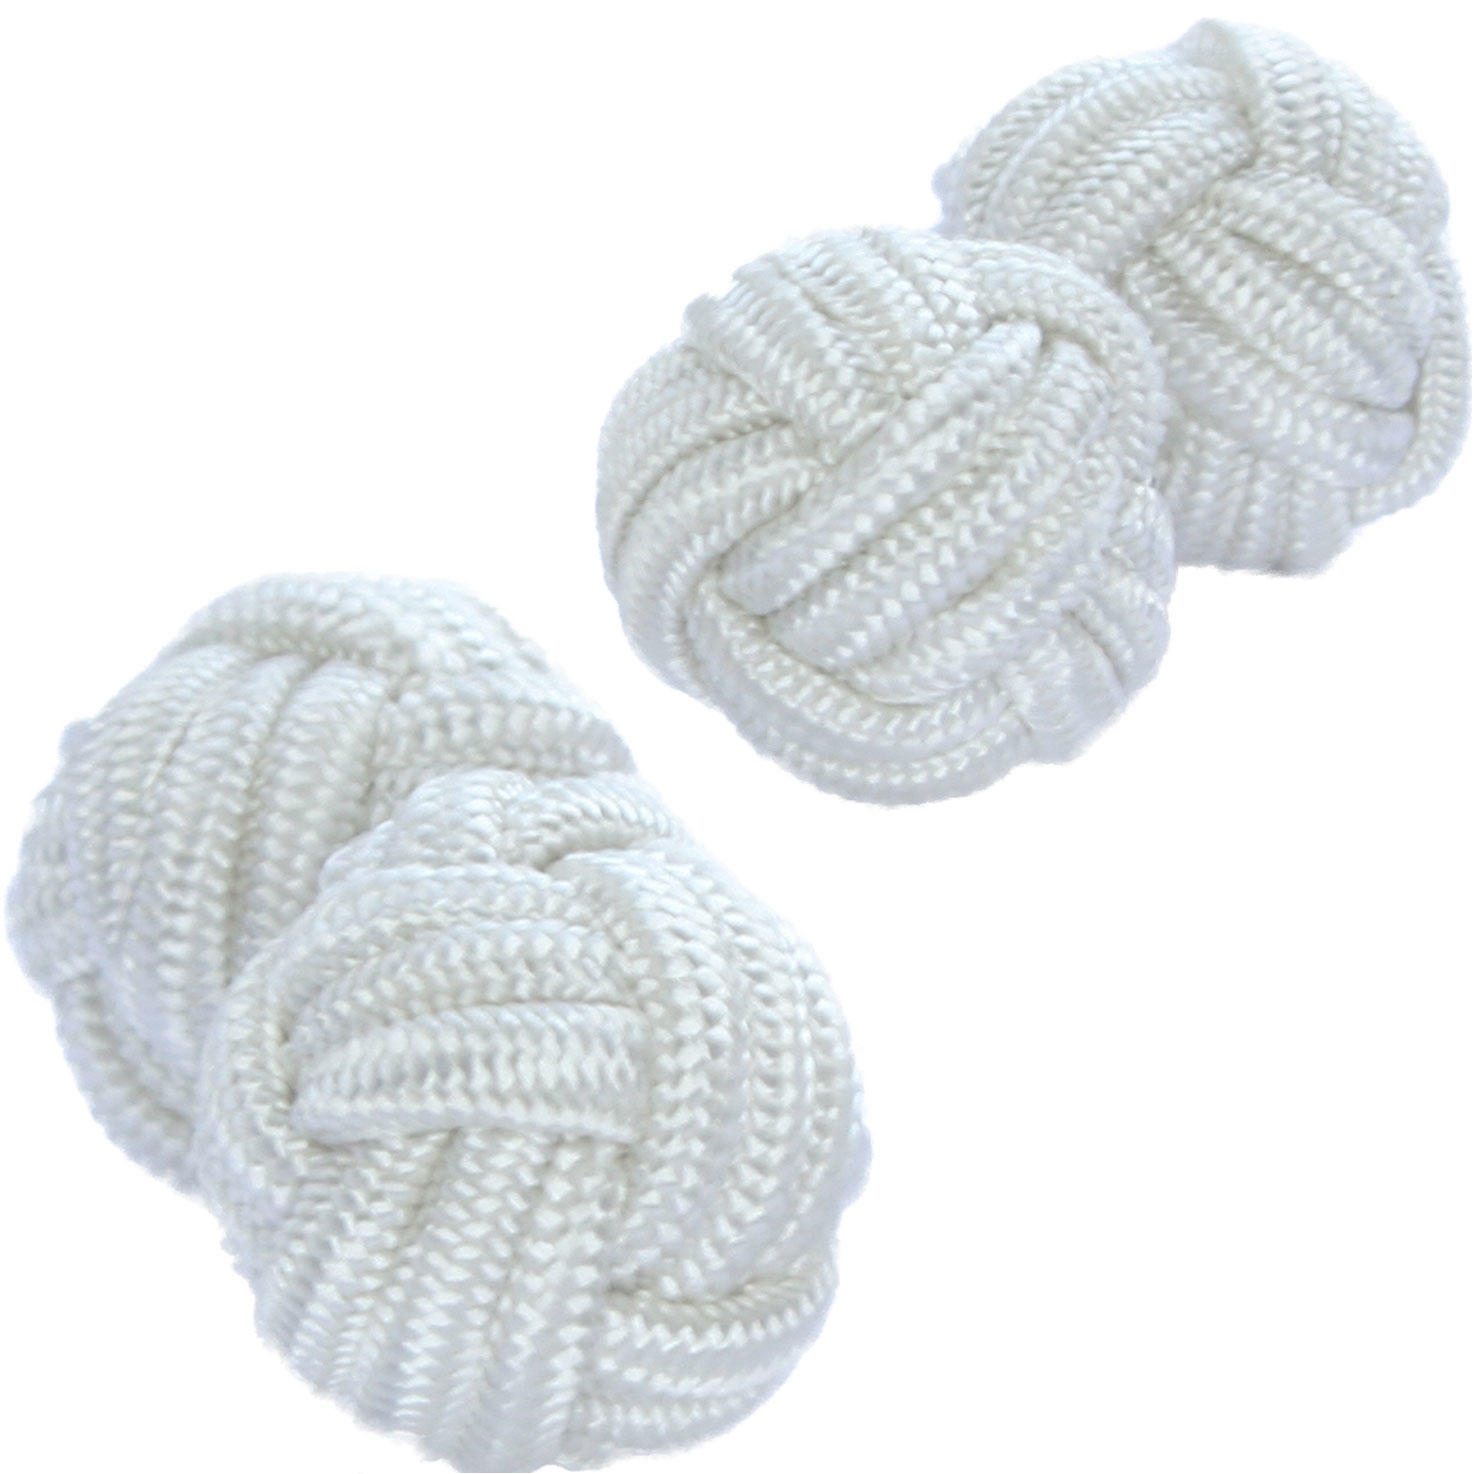 Pure White Silk Knot Cufflinks from Cuffs & Co